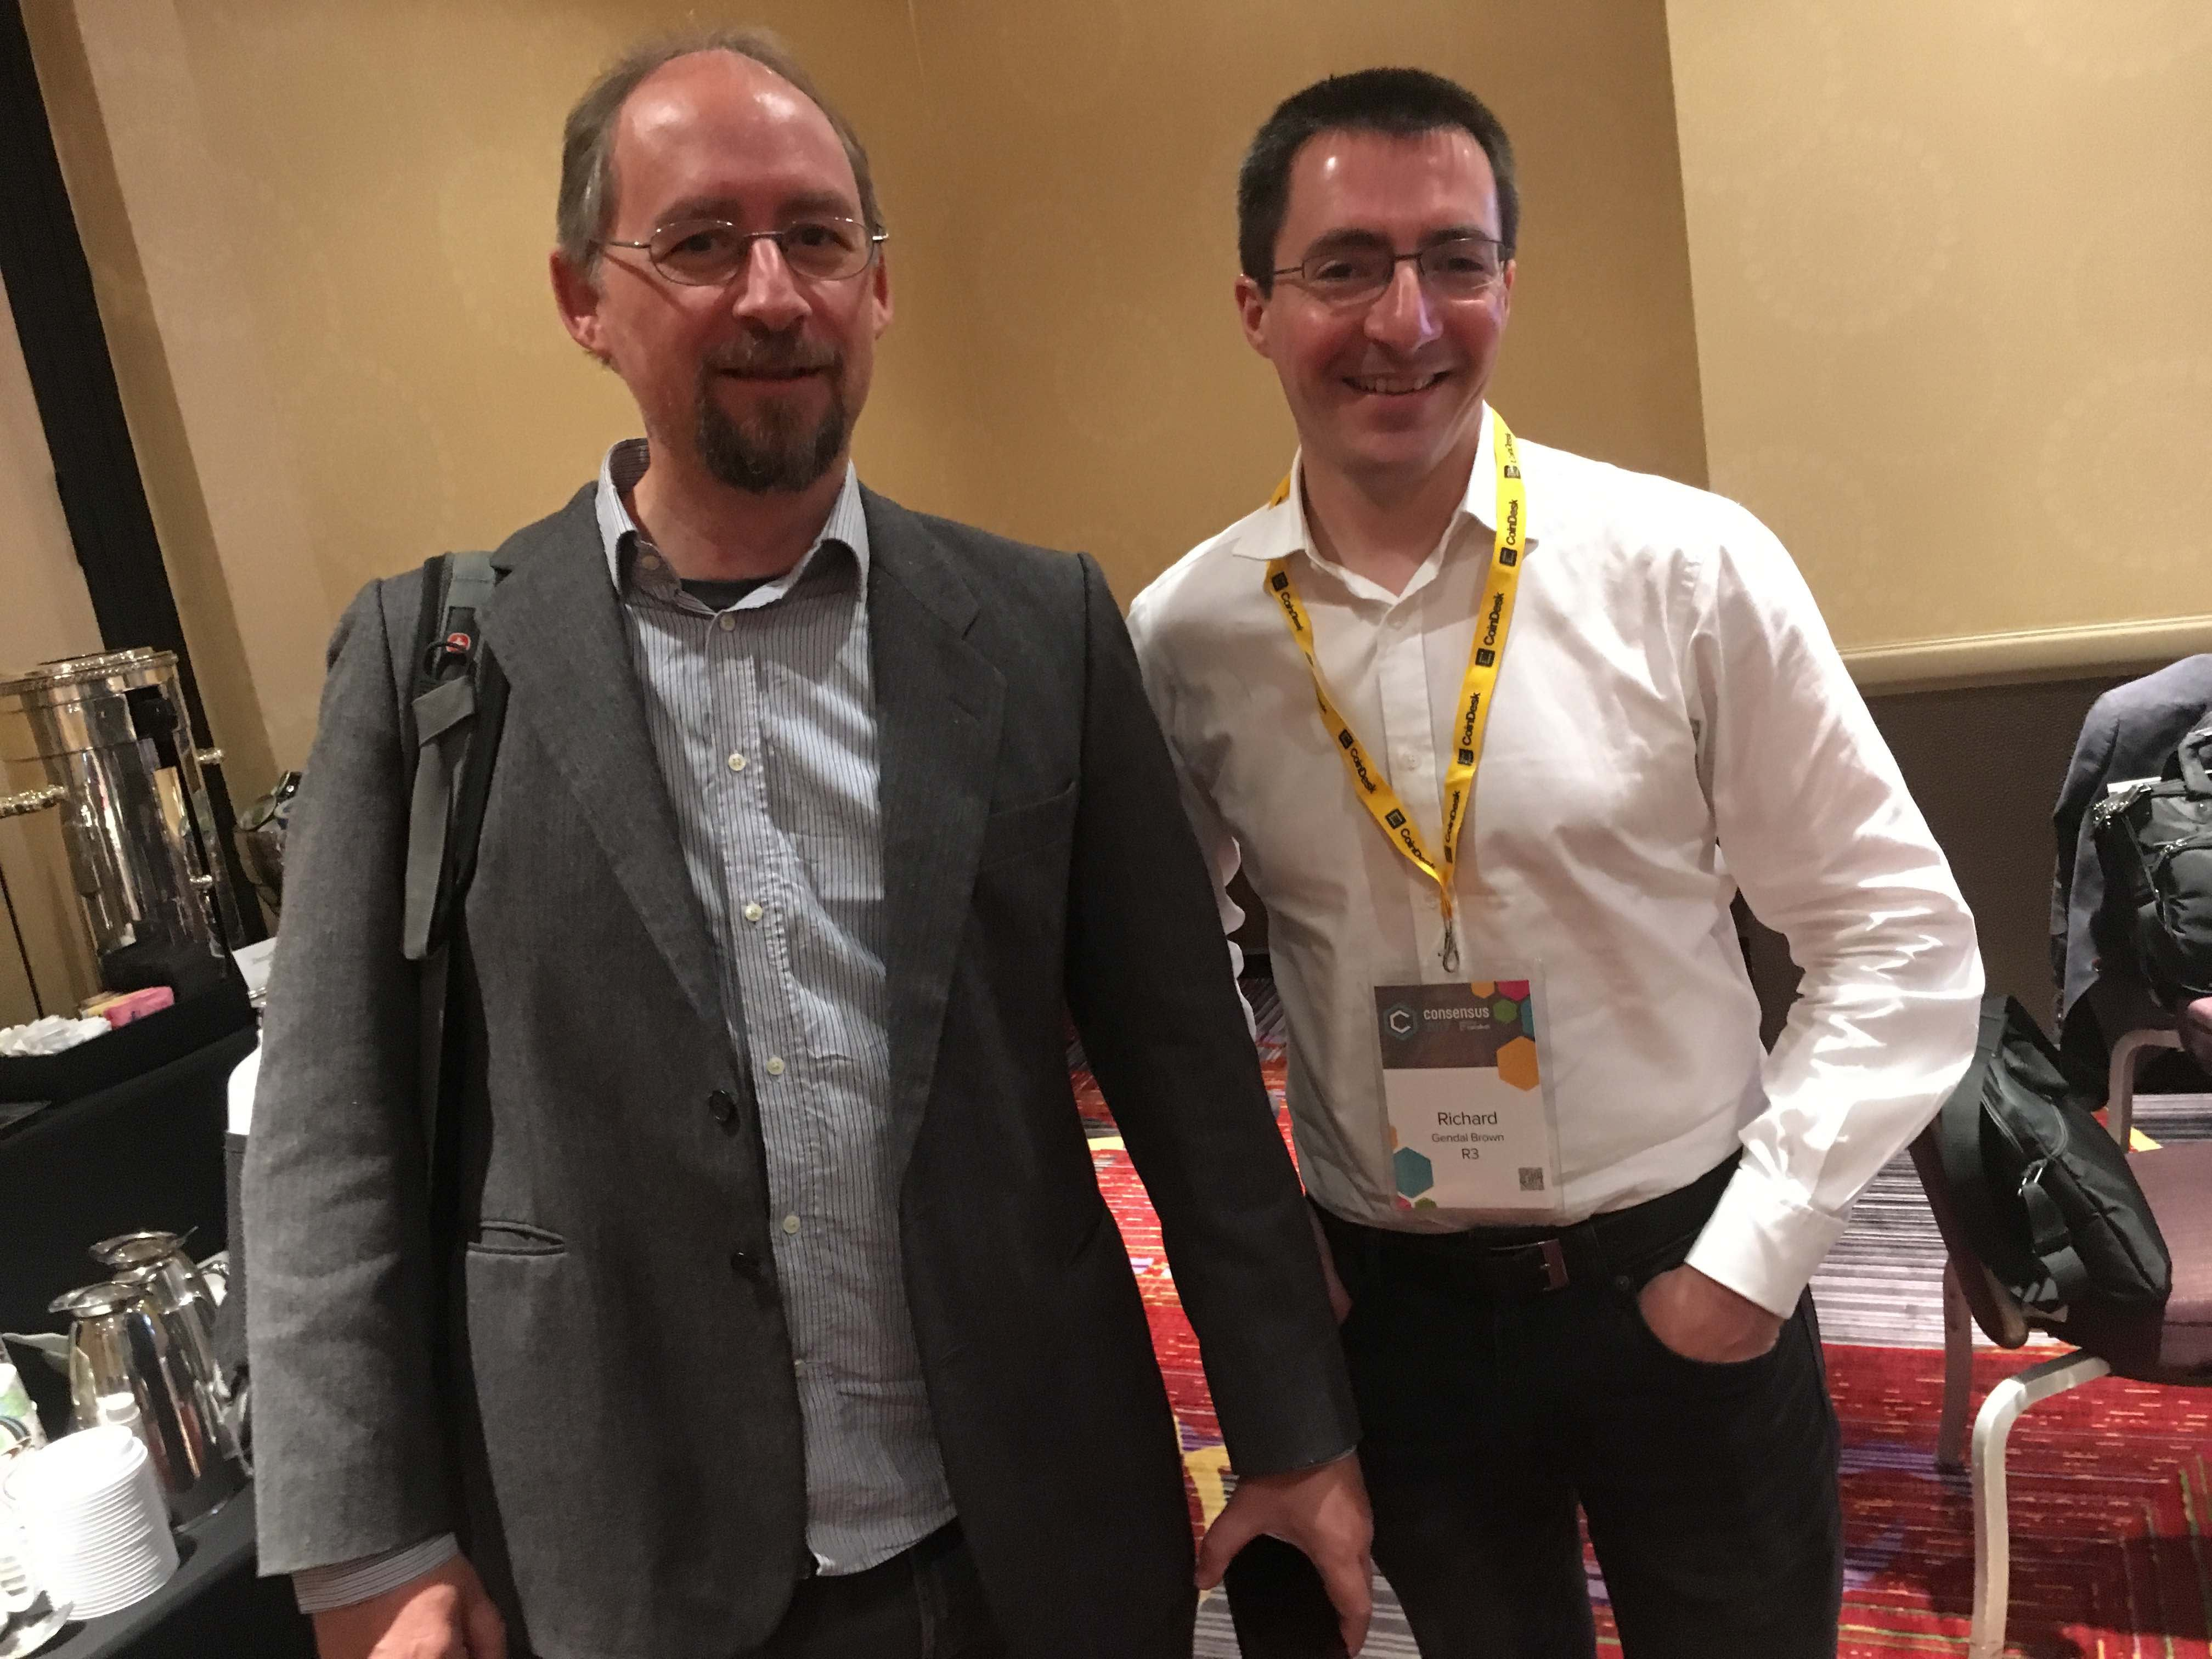 #bitcoin @BitcoinRTs  Consensus 2017: Blockchain Tech Leaders…  |Subscribe to see entertaining videos! bit.ly/2n9c2sc @DNR_CREW @HyperRTs